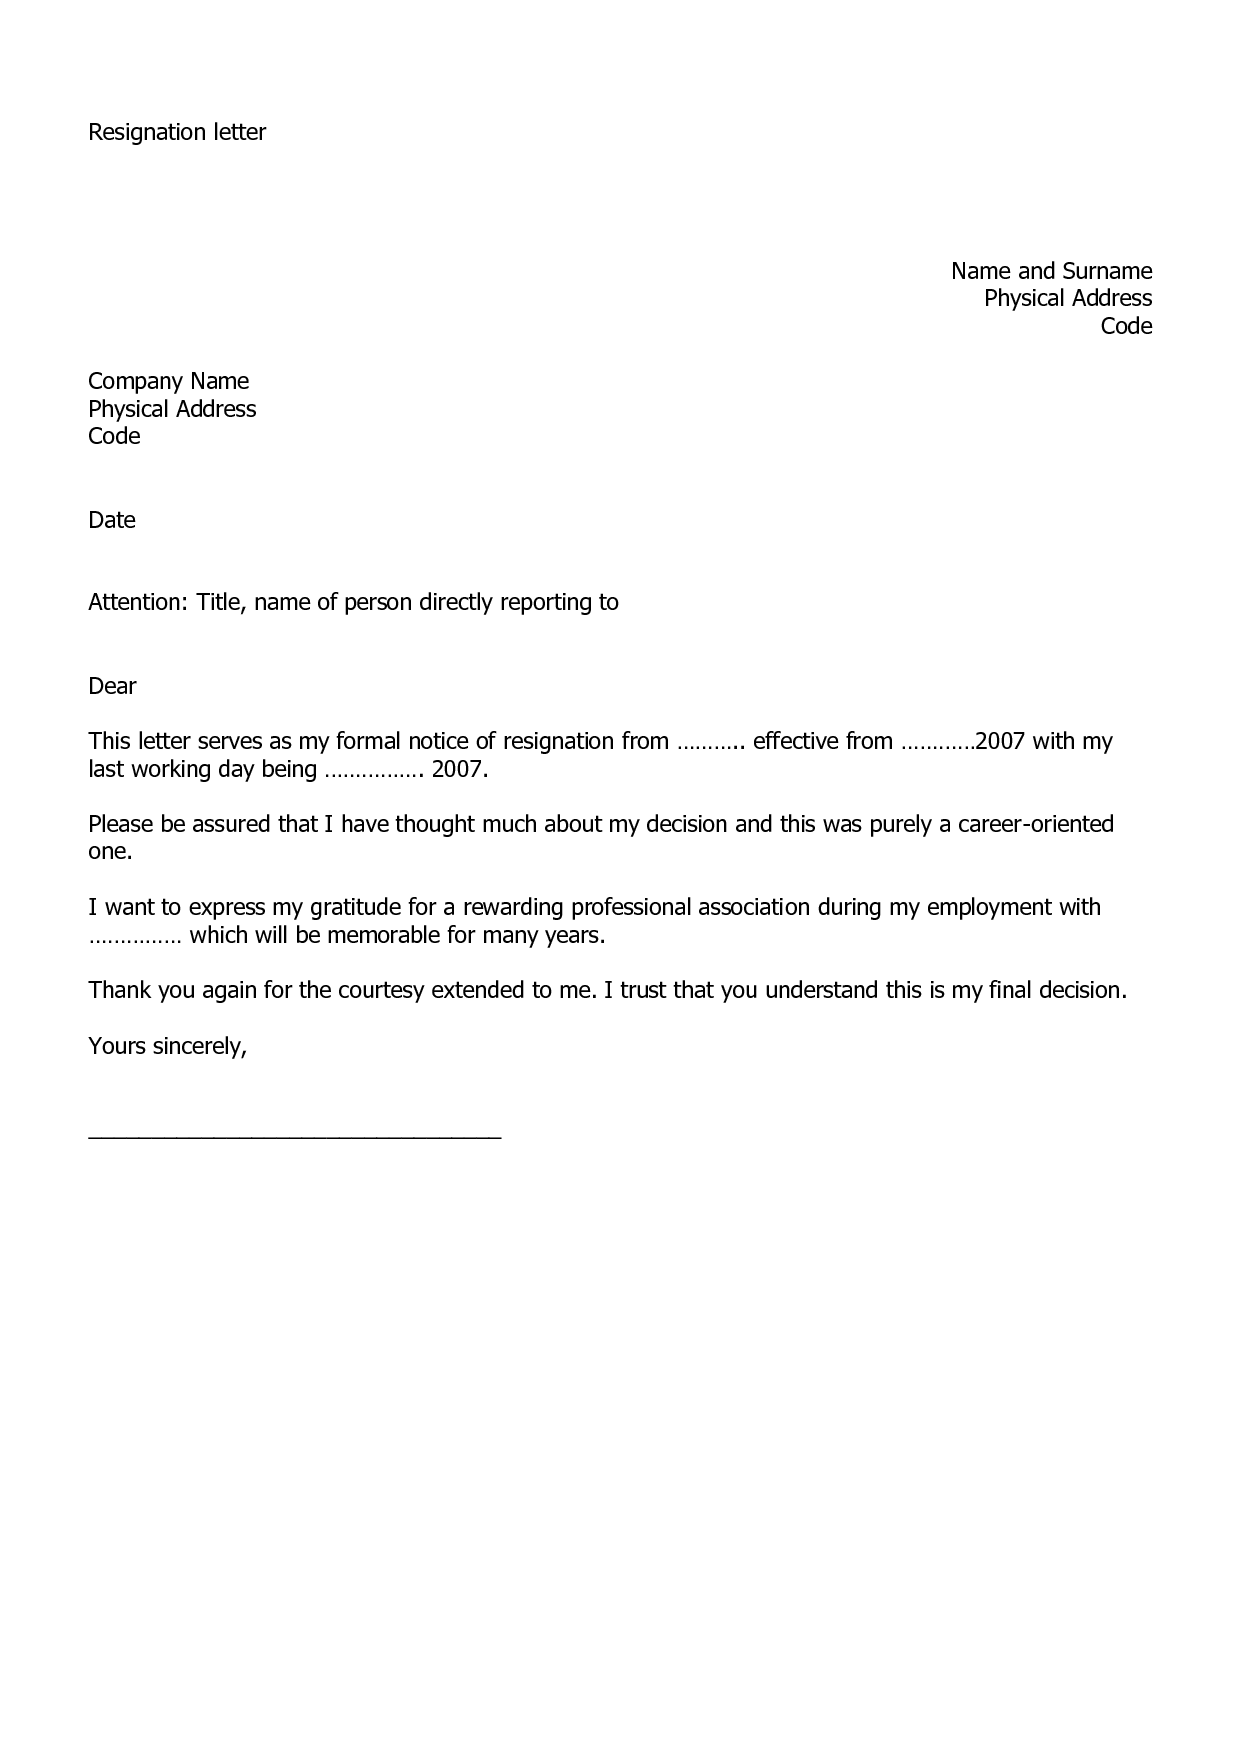 sample resignation notice 11 good resignation letter samples – Samples of Resignation Letters with Regret